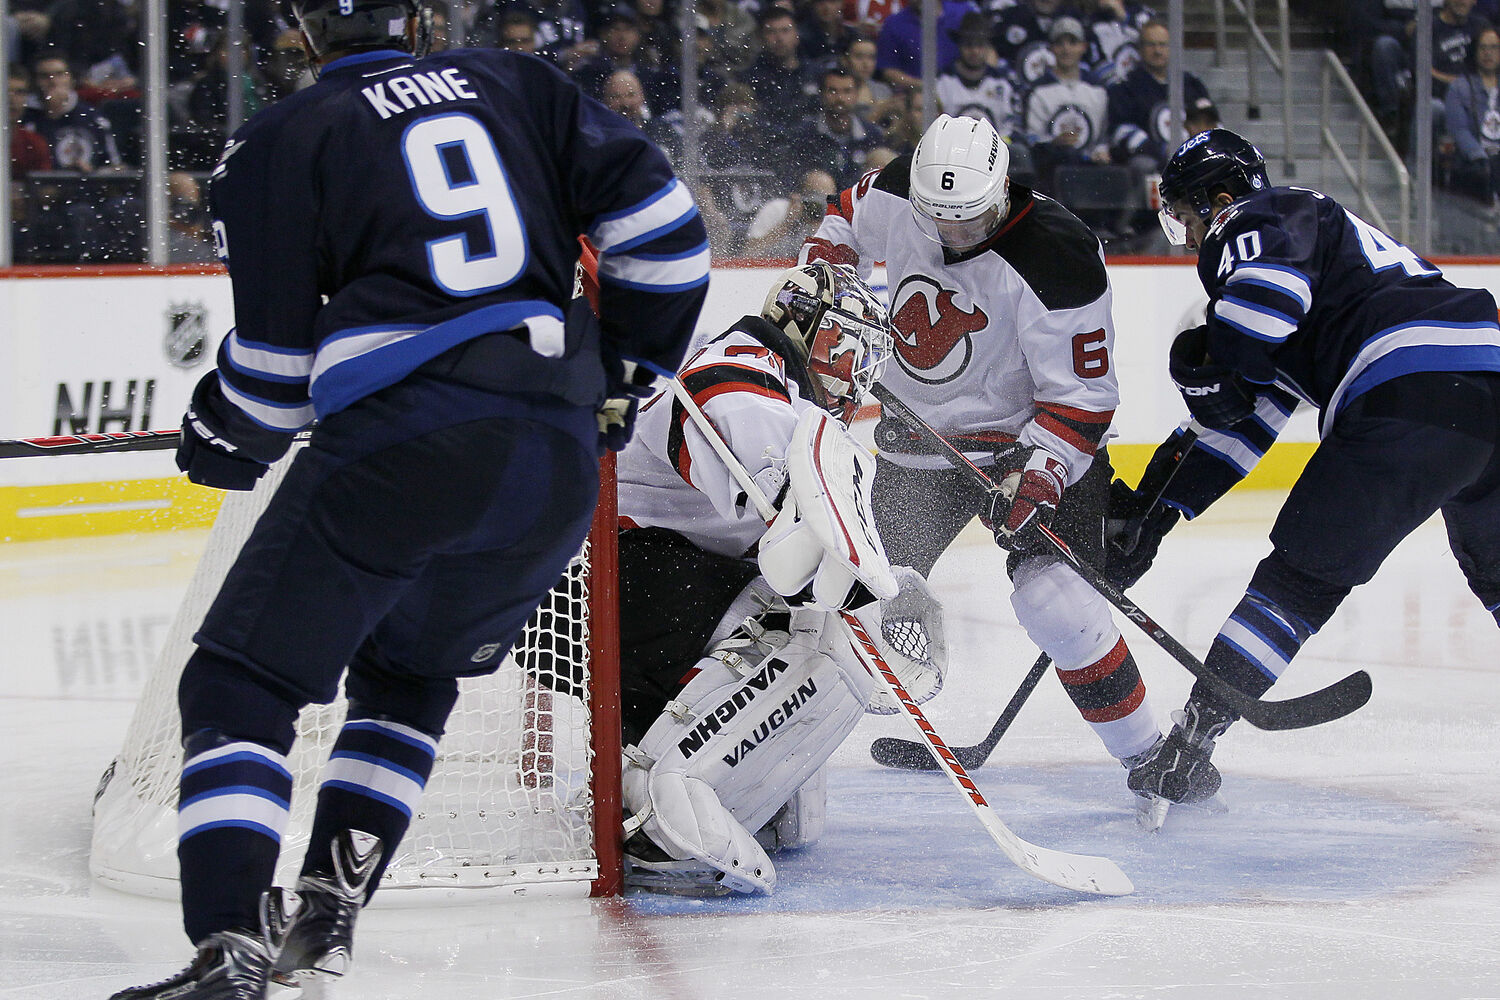 Evander Kane's shot deflects off New Jersey Devils' Andy Greene and past goaltender Cory Schneider for the Jets first goal during the second period. (JOHN WOODS / WINNIPEG FREE PRESS)